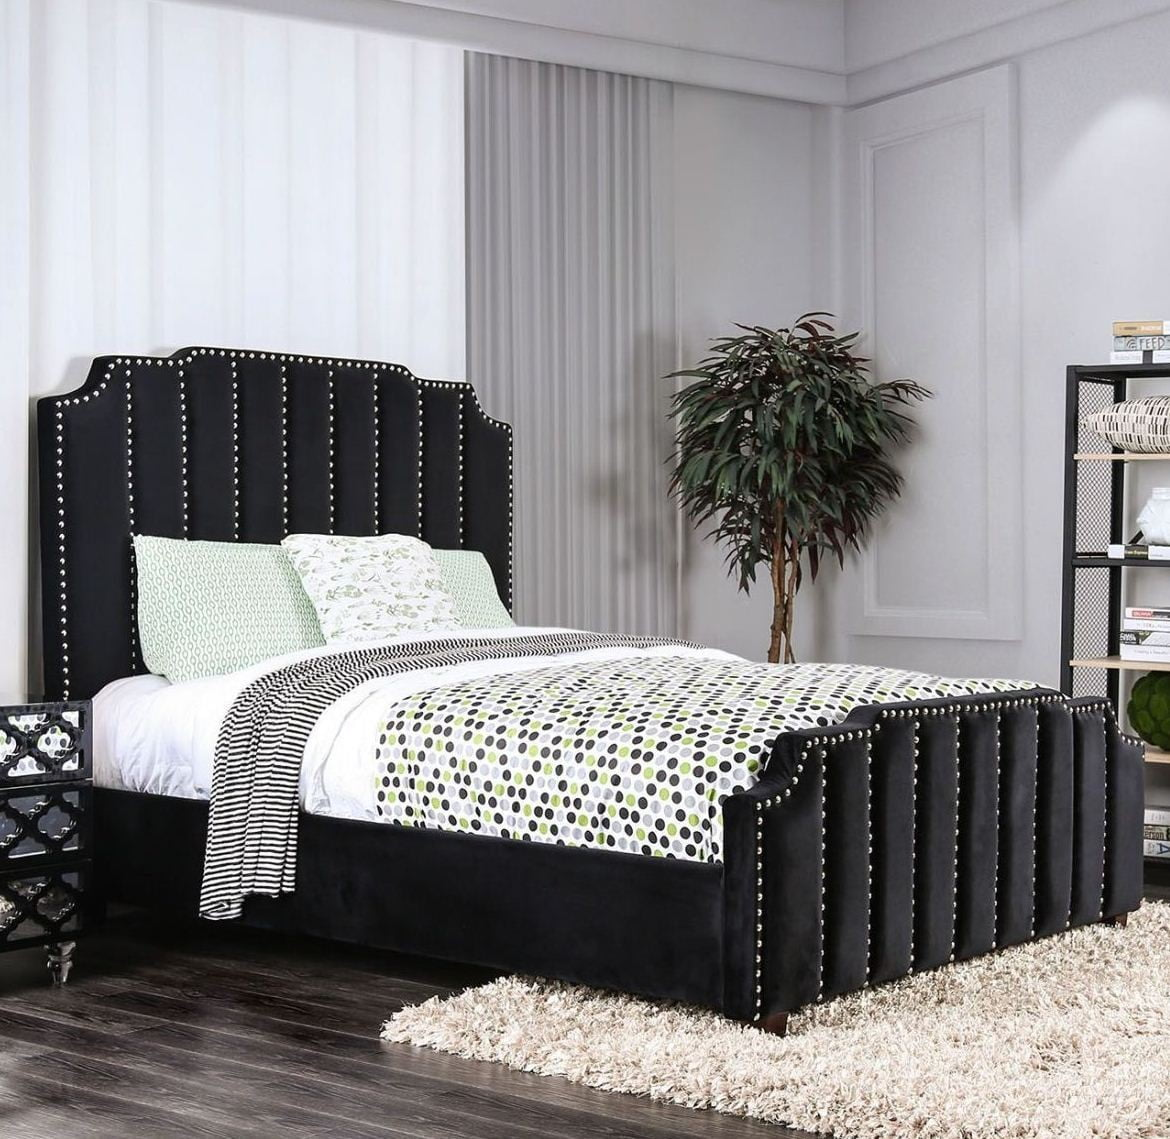 Contemporary Beautiful Classic Lovely Black Color Flannelette Fabric California King Size Bed Relax Bedframe Nailhead Trim Bedroom Furniture Walmart Com Walmart Com